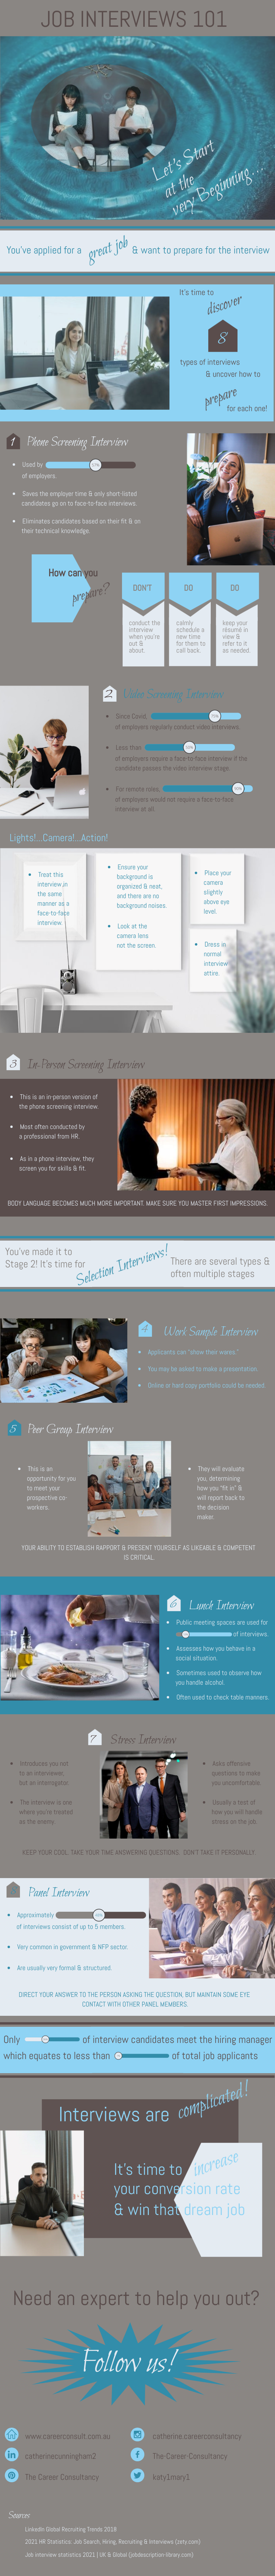 Infographic on 8 styles of Interviews and how to prepare. By Catherine Cunningham. Career Consultant in Adelaide South Austrlaia.